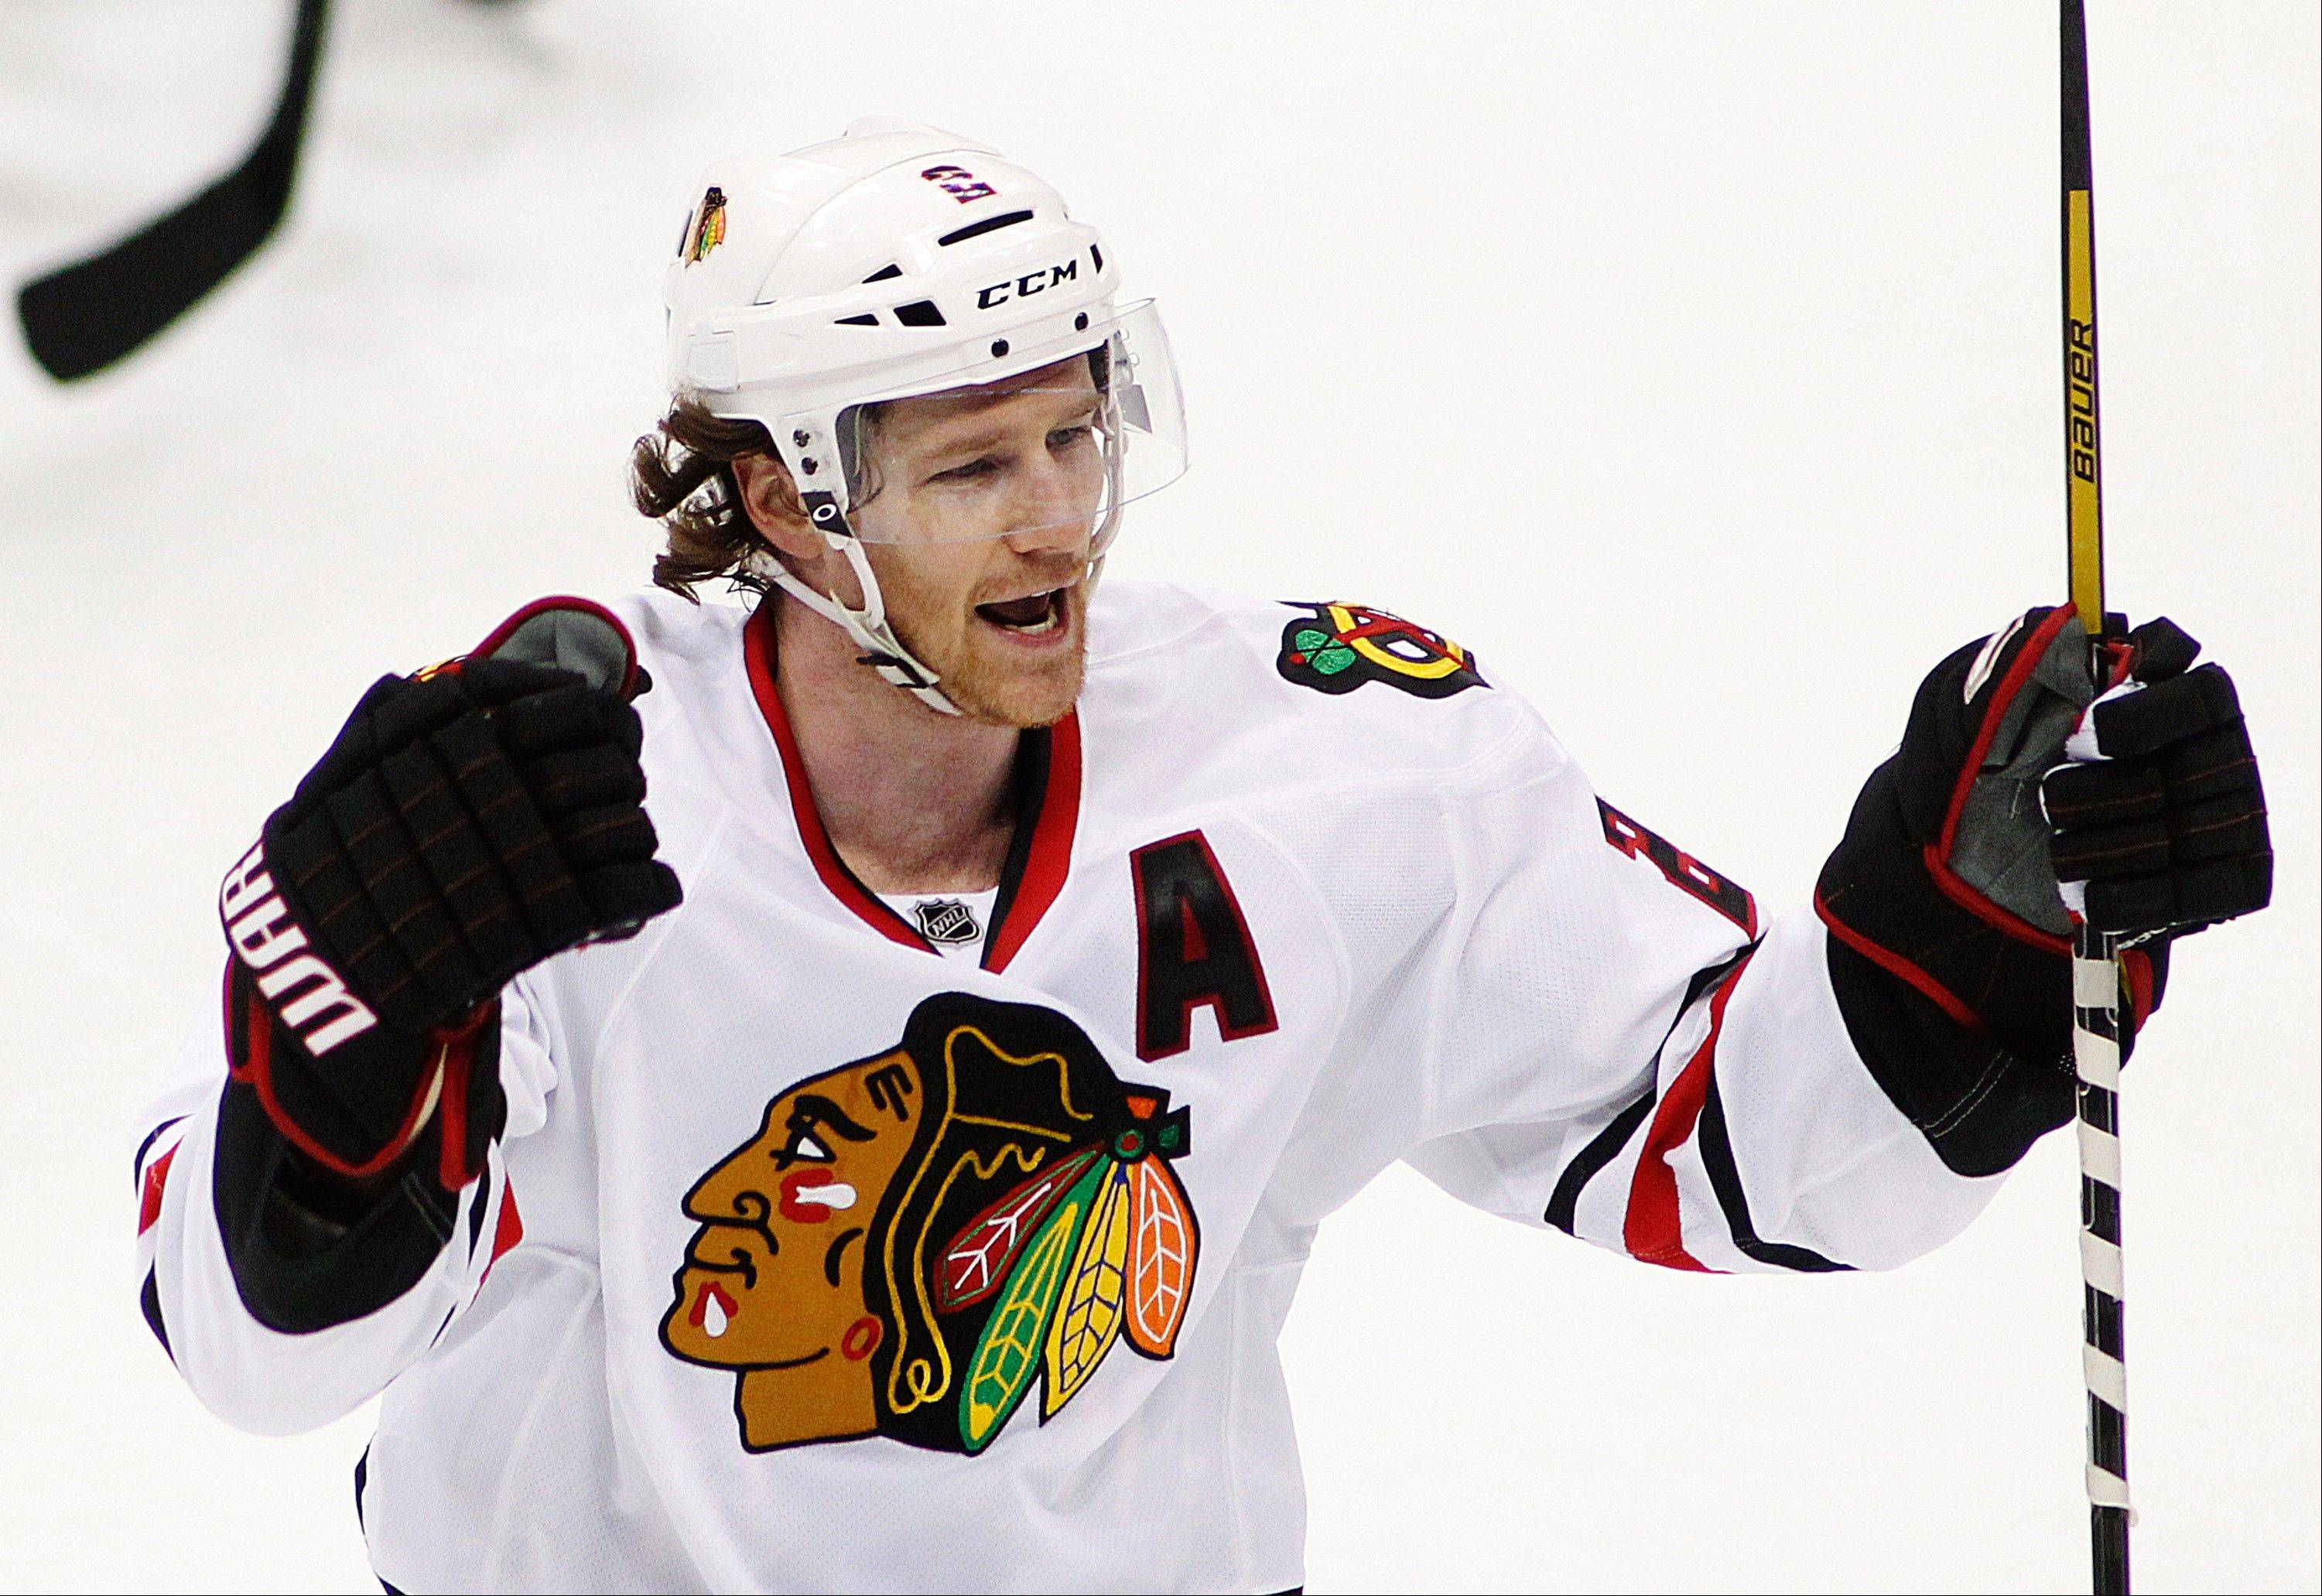 The Blackhawks� Duncan Keith had plenty to celebrate Tuesday when his wife, Kelly-Rae, gave birth to their first child � a son they named Colton Duncan. After the birth in Chicago, Keith flew back to Minnesota and played in Game 4 of the Stanley Cup playoff series against the Wild.